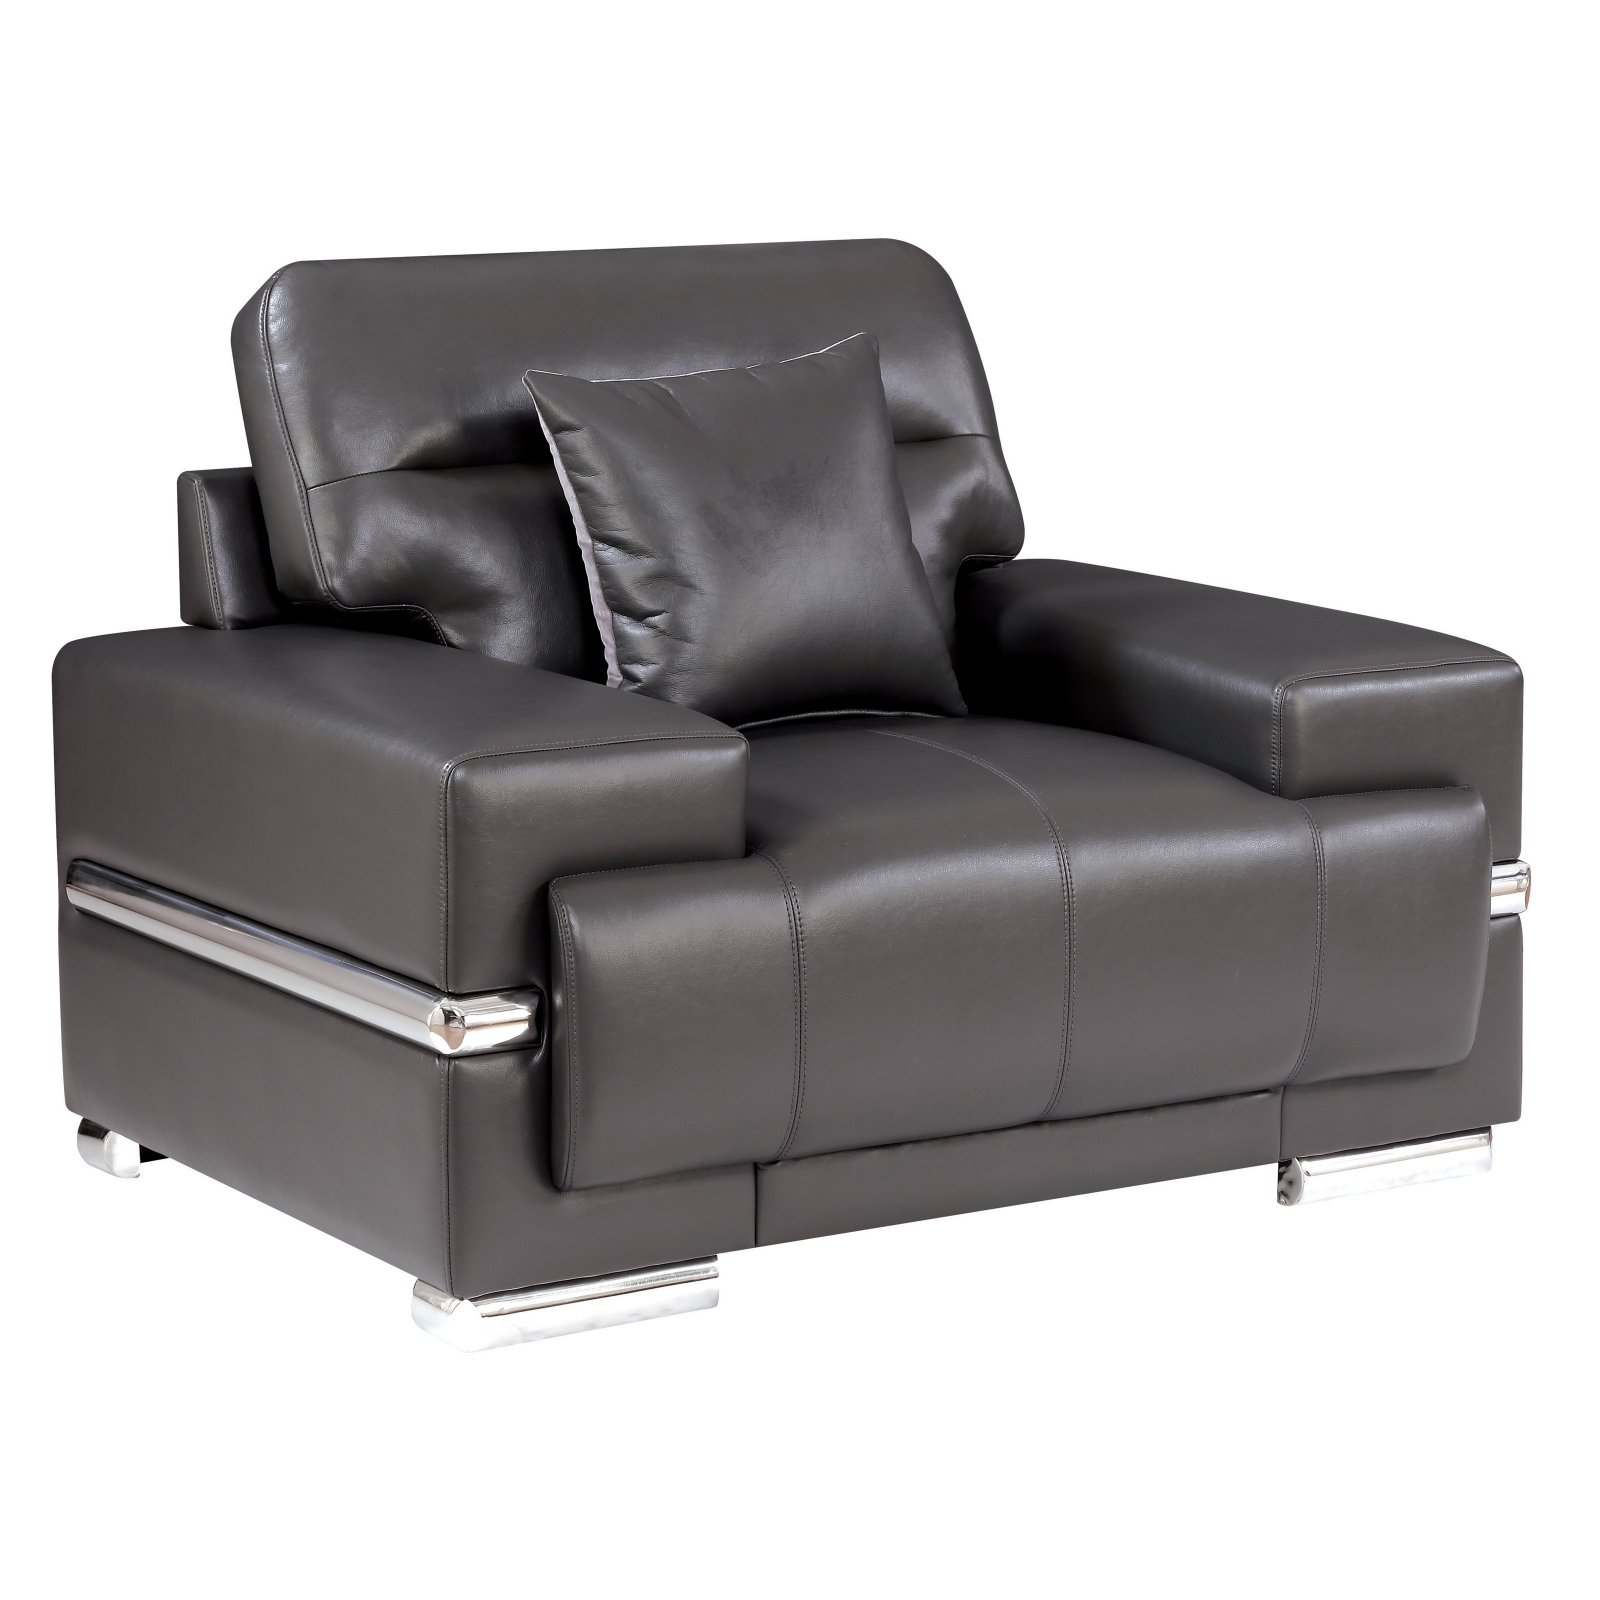 Furniture of America Preslly Contemporary Style Leatherette Arm Chair